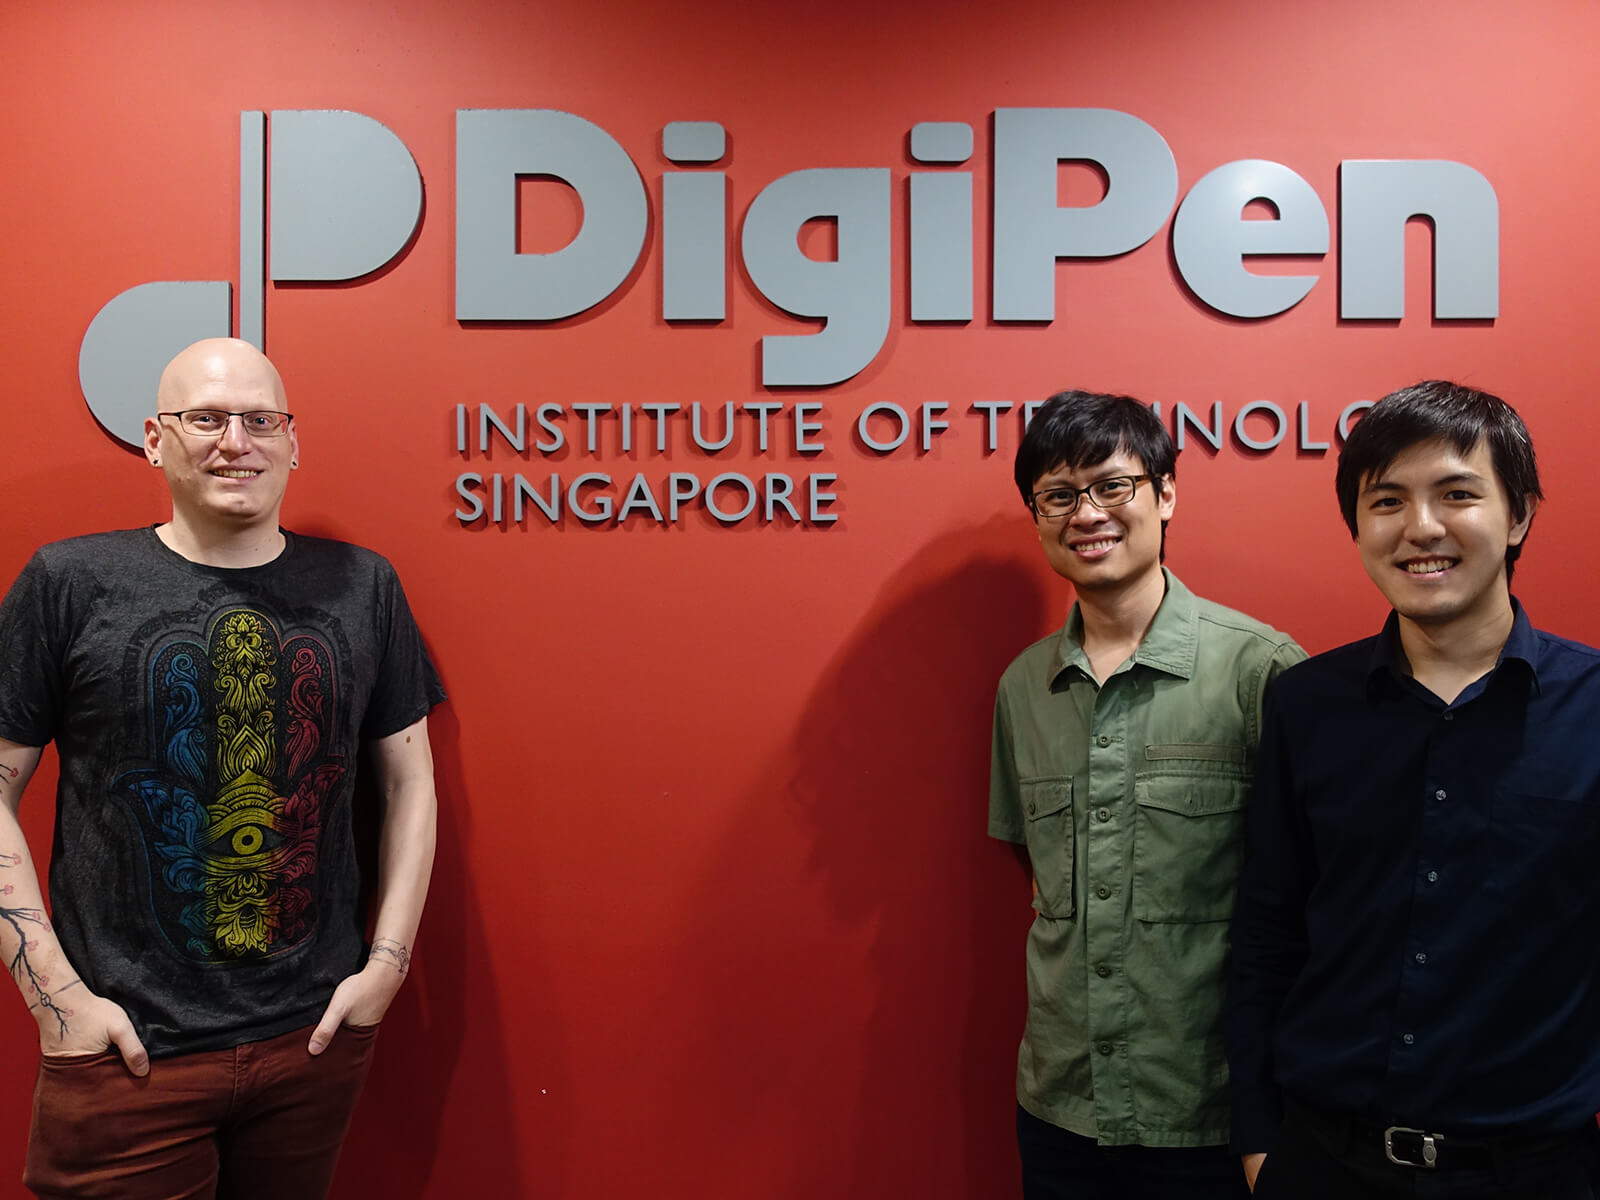 Kevin Prior, Howard Sin, and Gerald Wong stand in front of a red wall with the DigiPen Institute of Technology Singapore logo